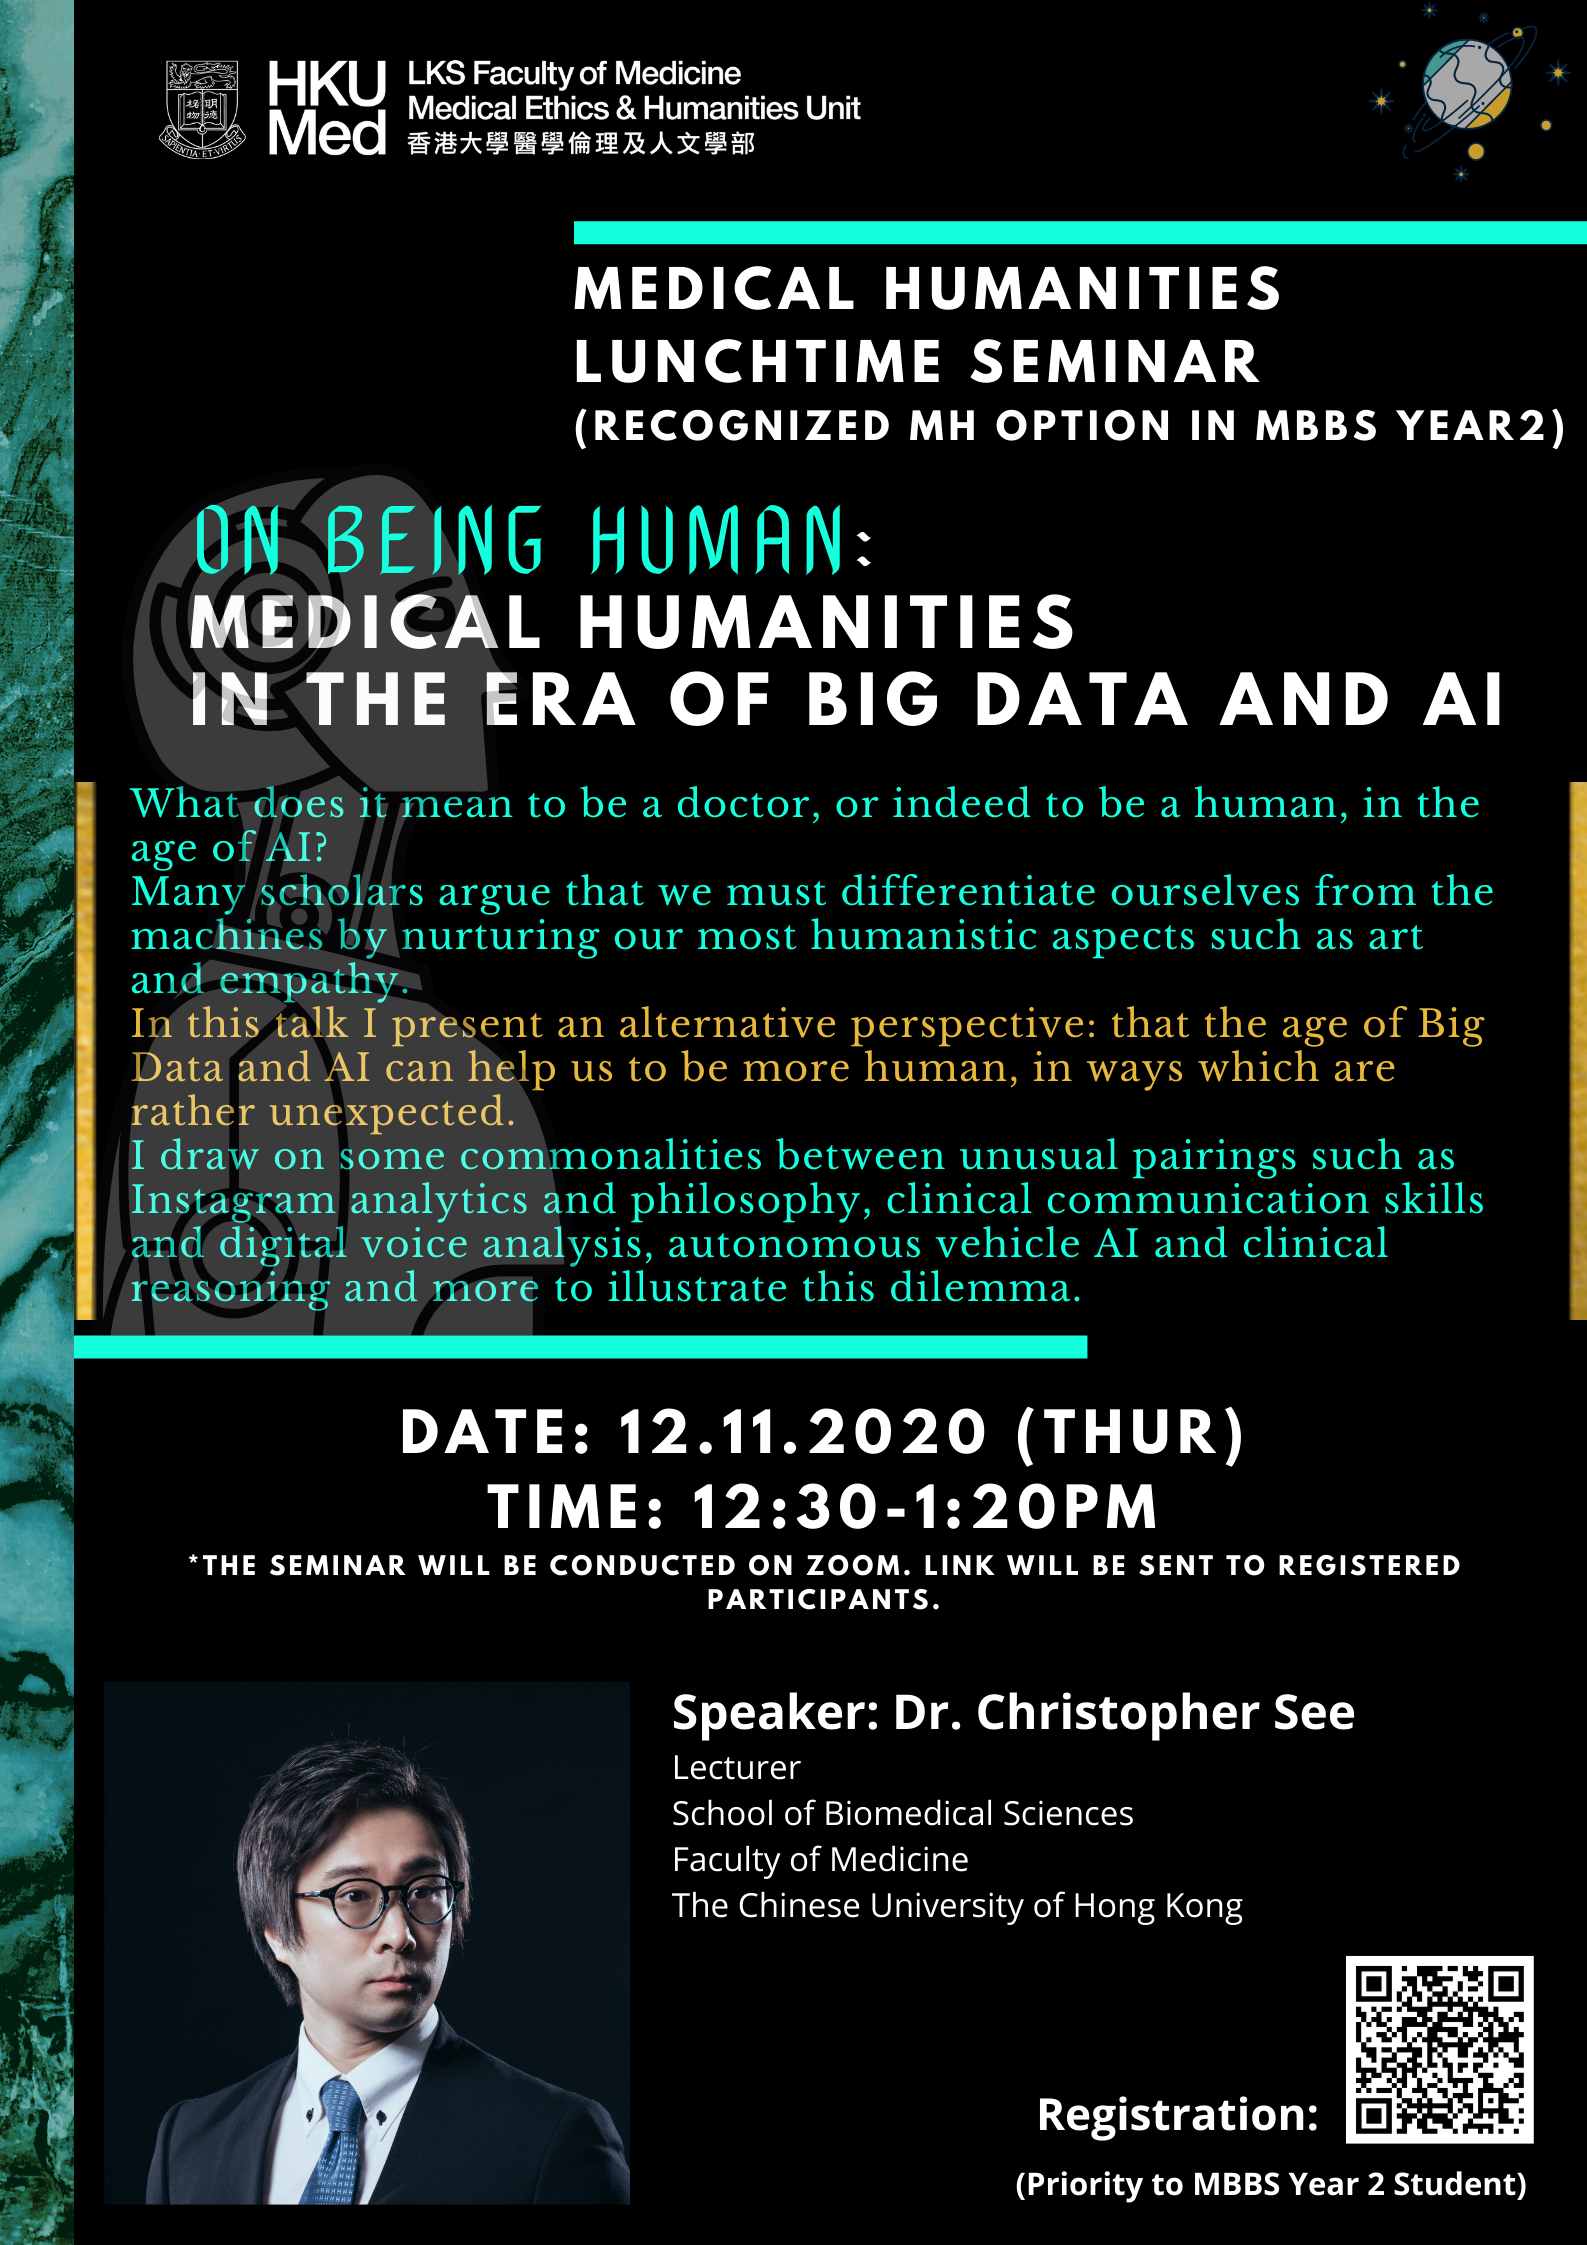 On Being Human: Medical Humanities in the Era of Big Data And AI